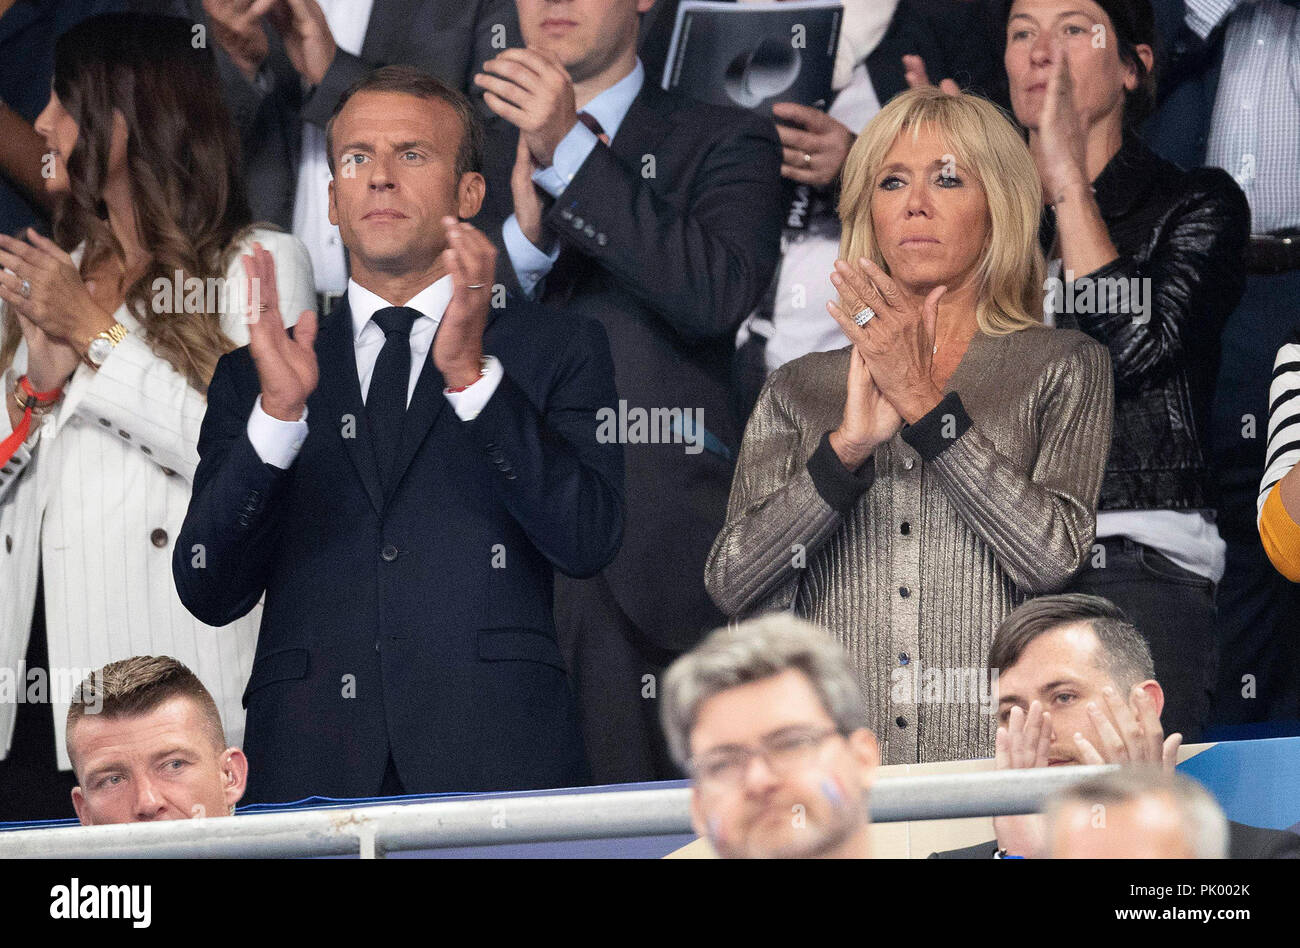 Saint Denis 10th Sep 2018 French President Emmanuel Macron L Together With His Wife Brigitte Macron